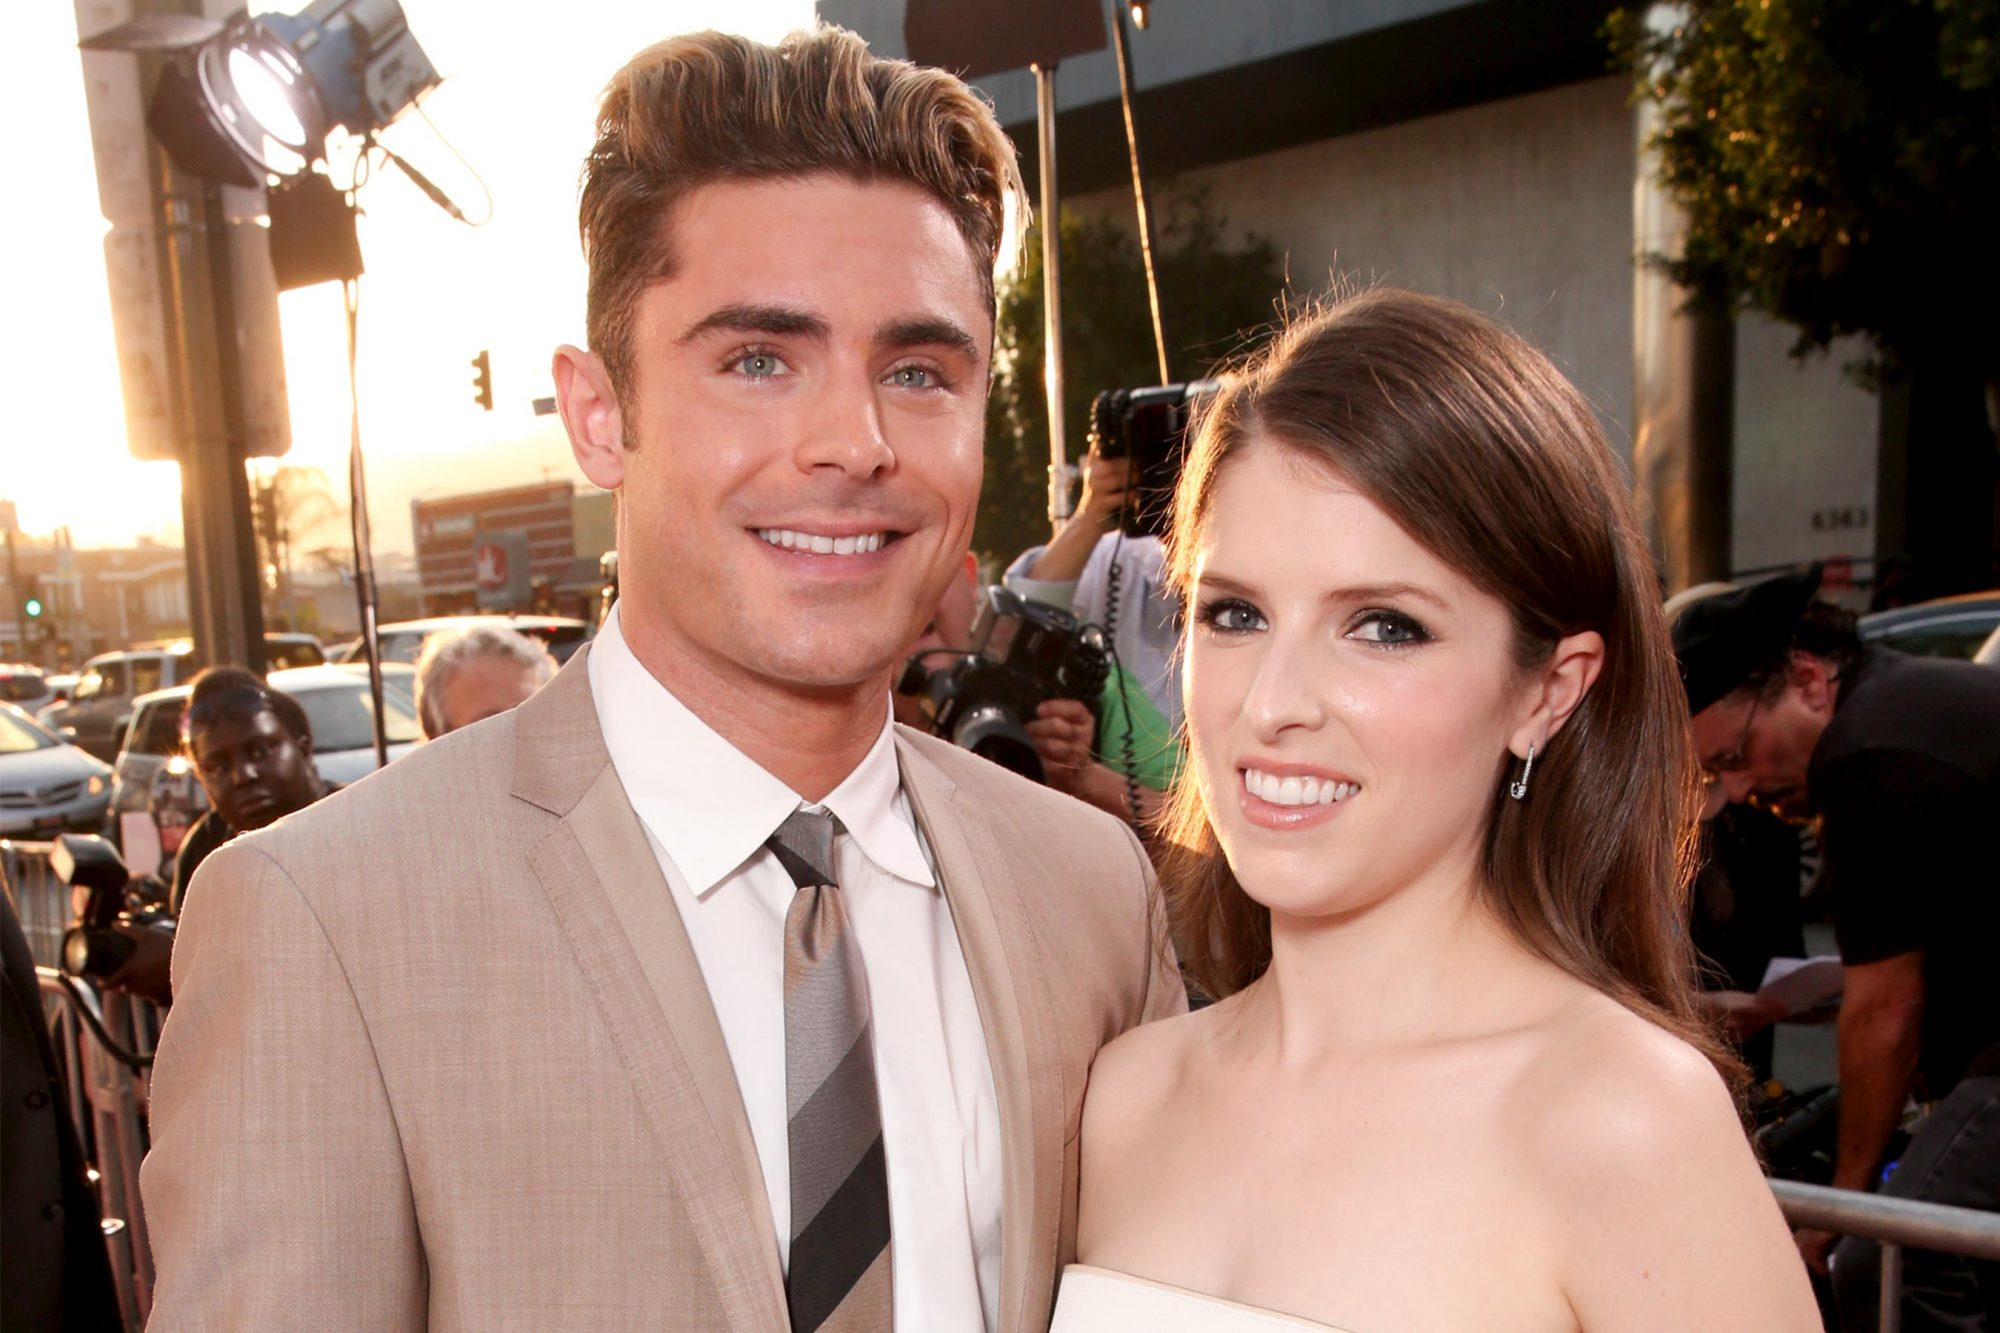 """HOLLYWOOD, CA - JUNE 29: Actors Zac Efron (L) and Anna Kendrick attend the premiere of 20th Century Fox's """"Mike and Dave Need Wedding Dates"""" at ArcLight Cinemas Cinerama Dome on June 29, 2016 in Los Angeles, California. (Photo by Todd Williamson/Getty Images)"""